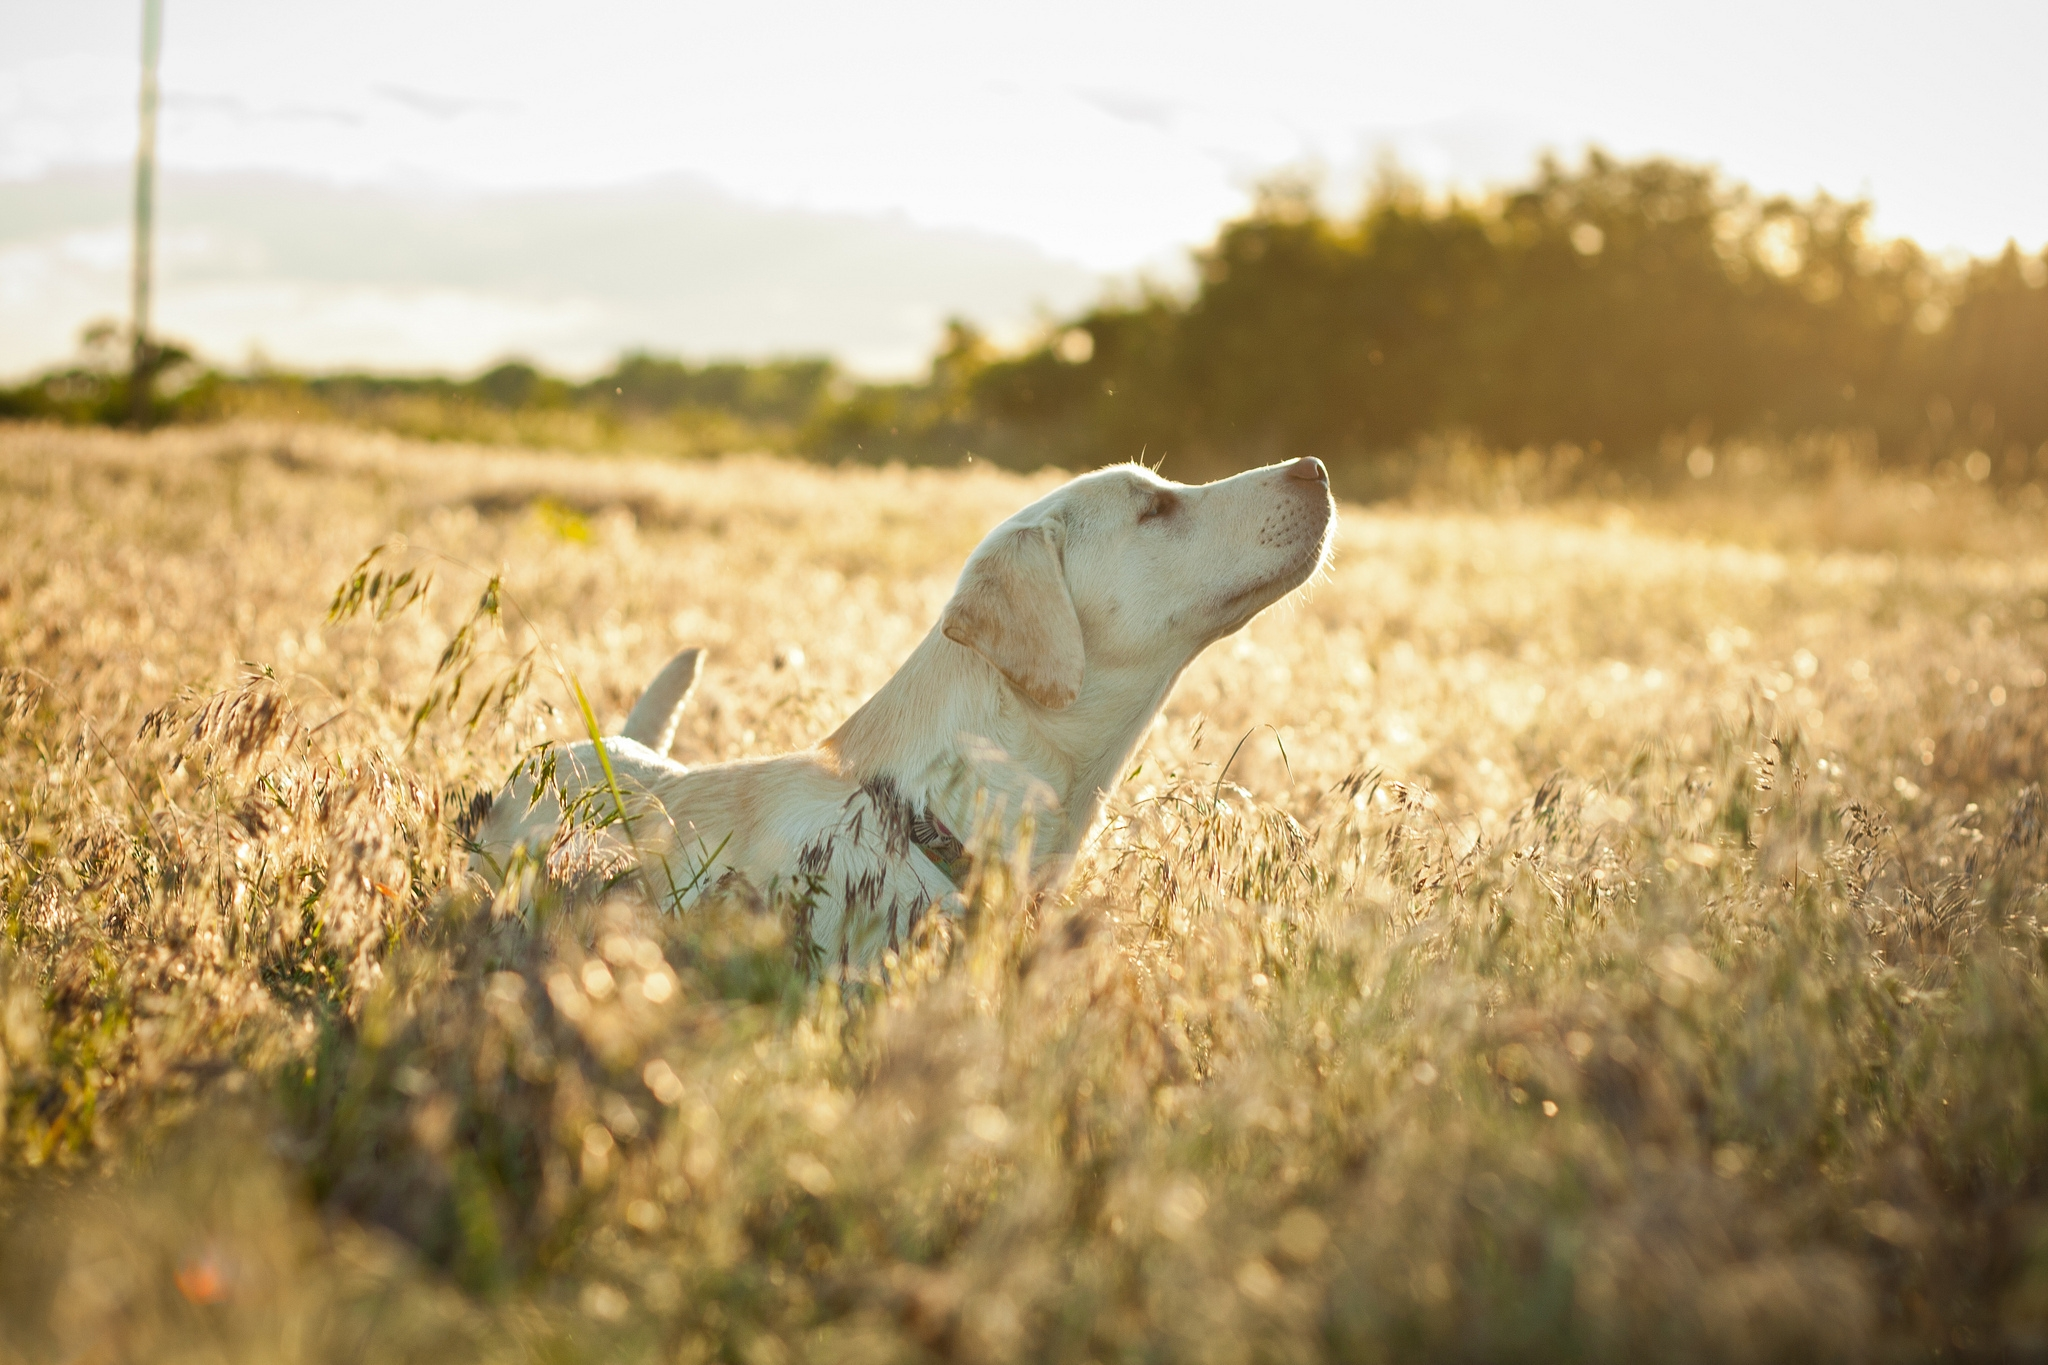 111134 download wallpaper Animals, Dog, Labrador, Muzzle, Grass, Stroll, Sunlight screensavers and pictures for free